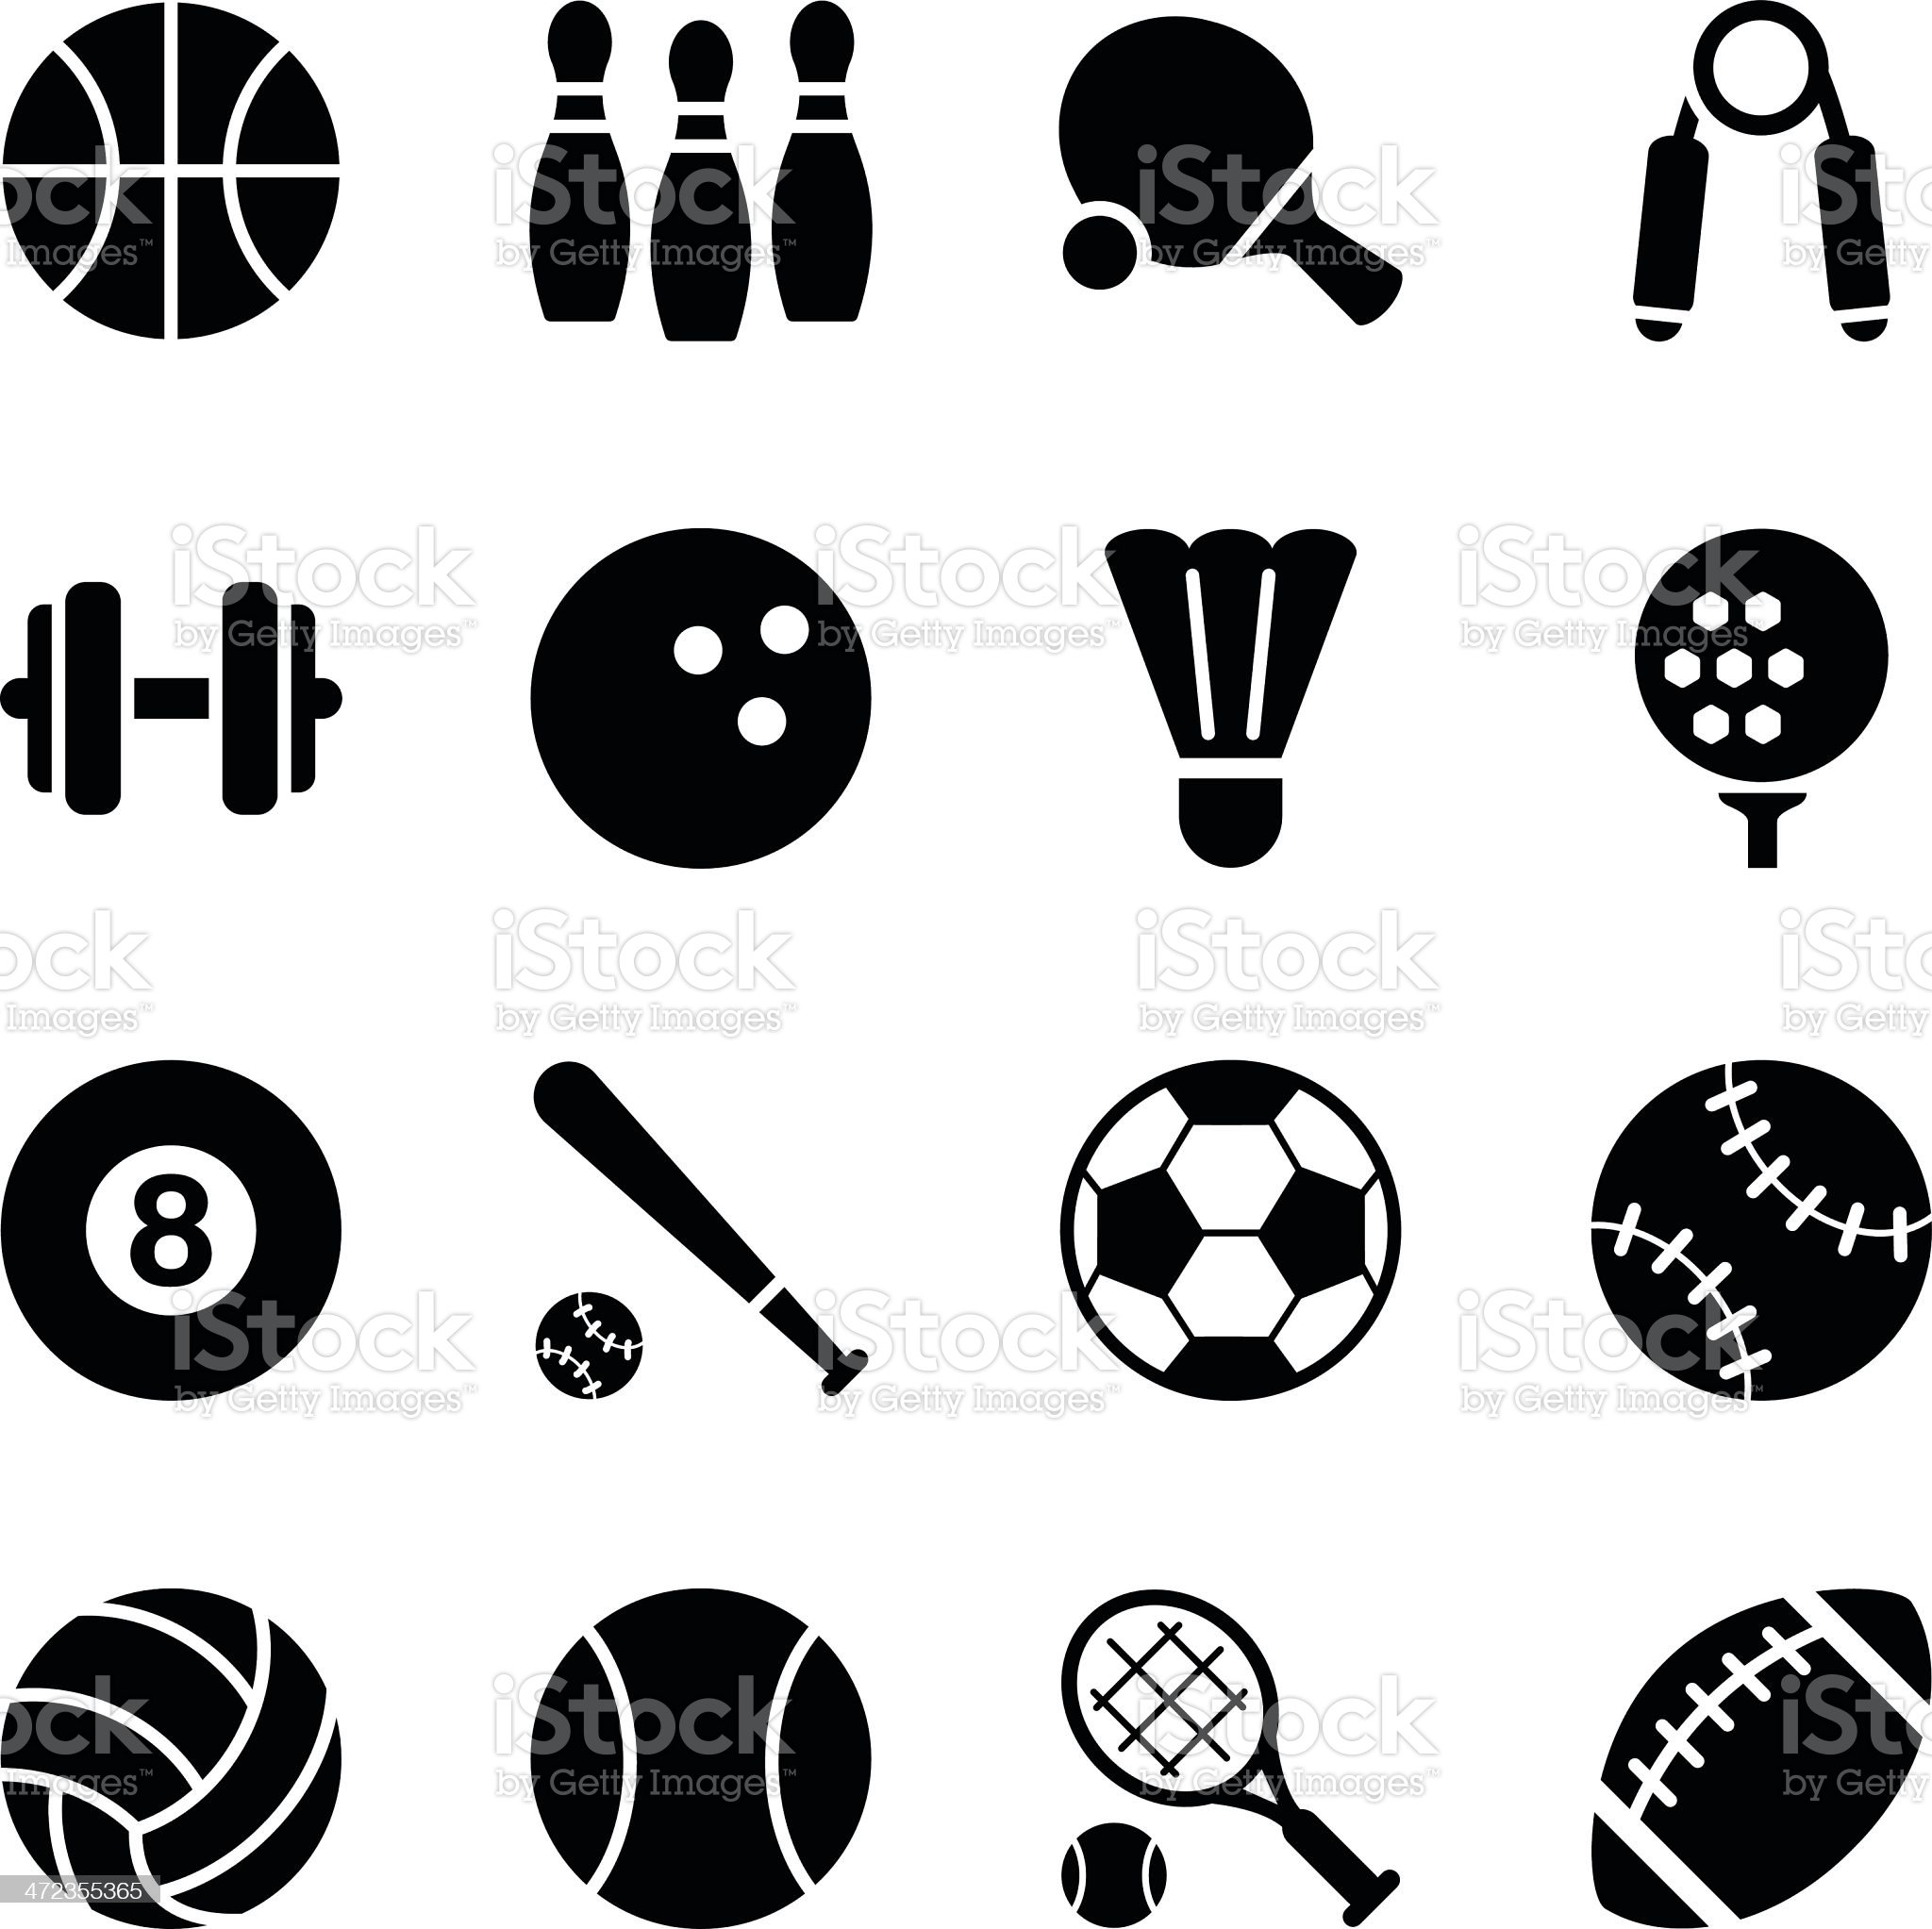 Set of simple black sports icons royalty-free stock vector art